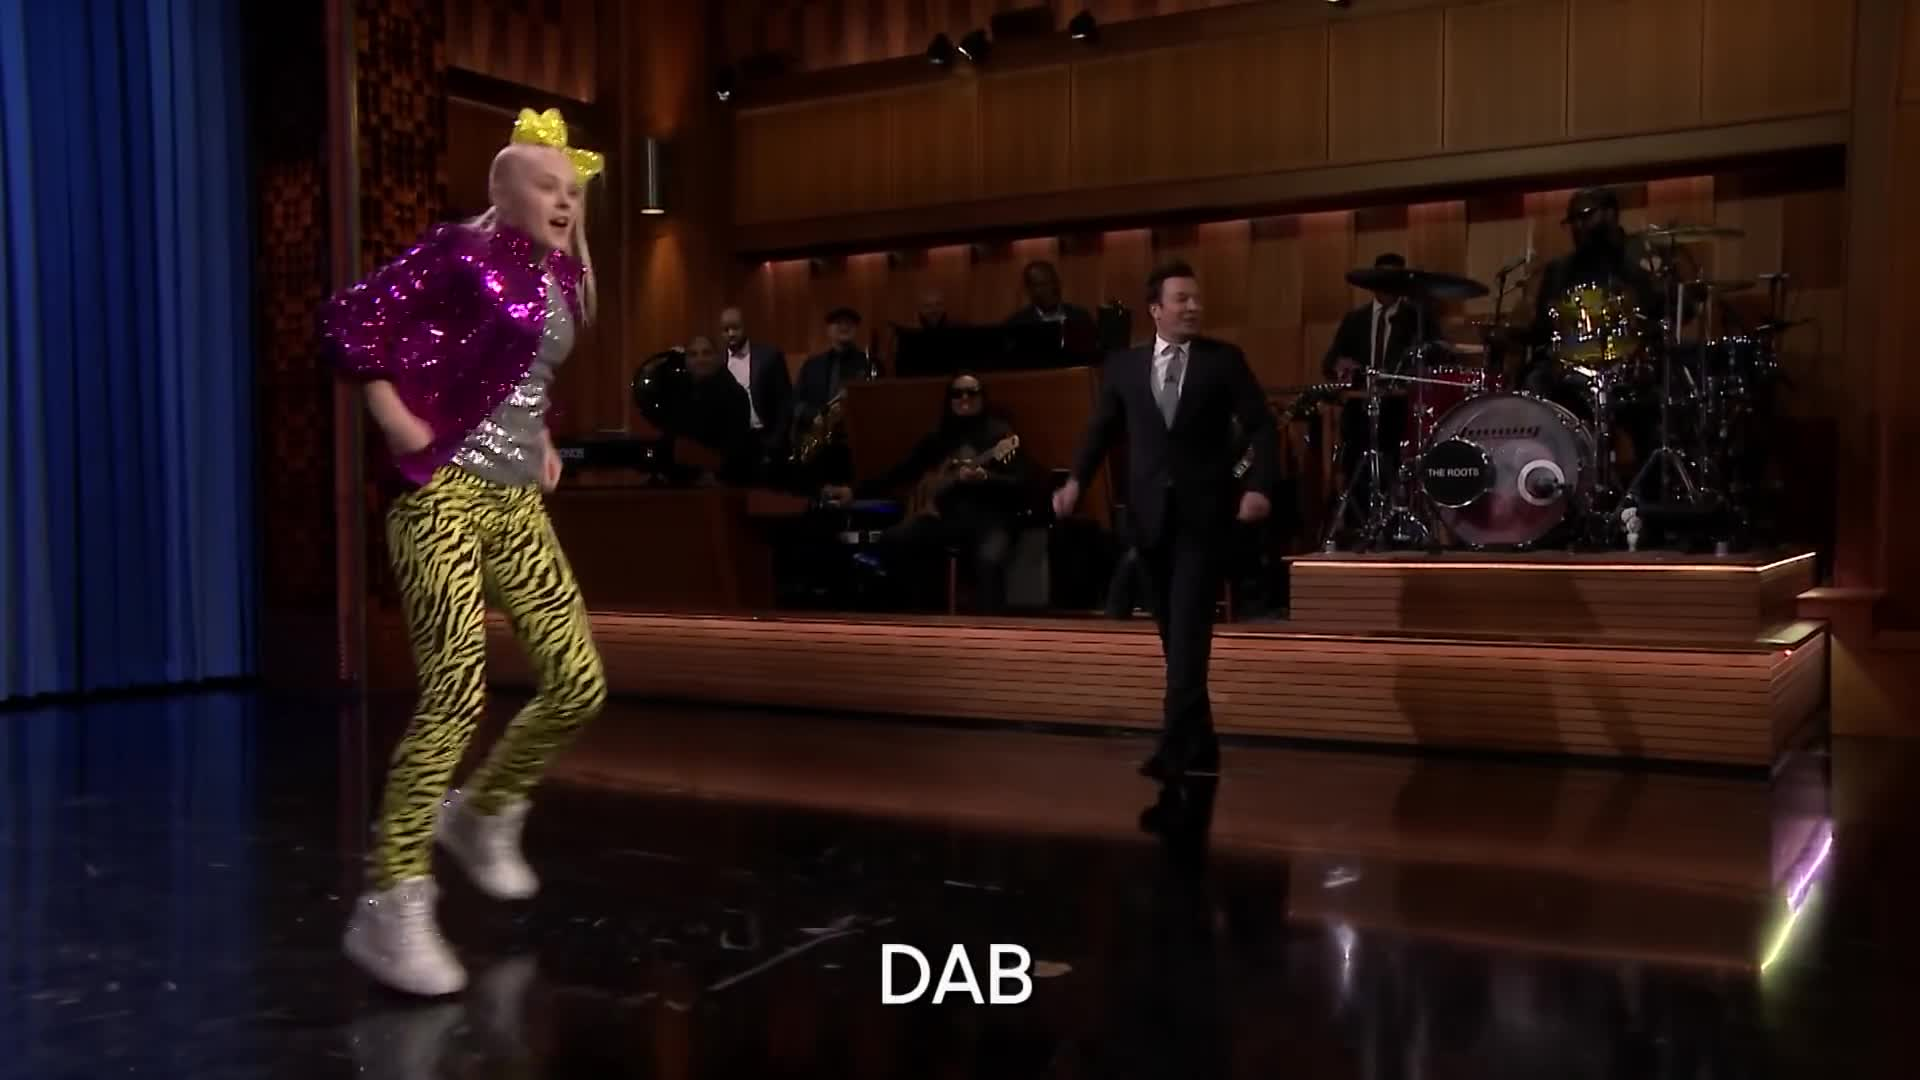 Dab, Jojo Siwa, Aggressive Dance-Off with JoJo Siwa GIFs